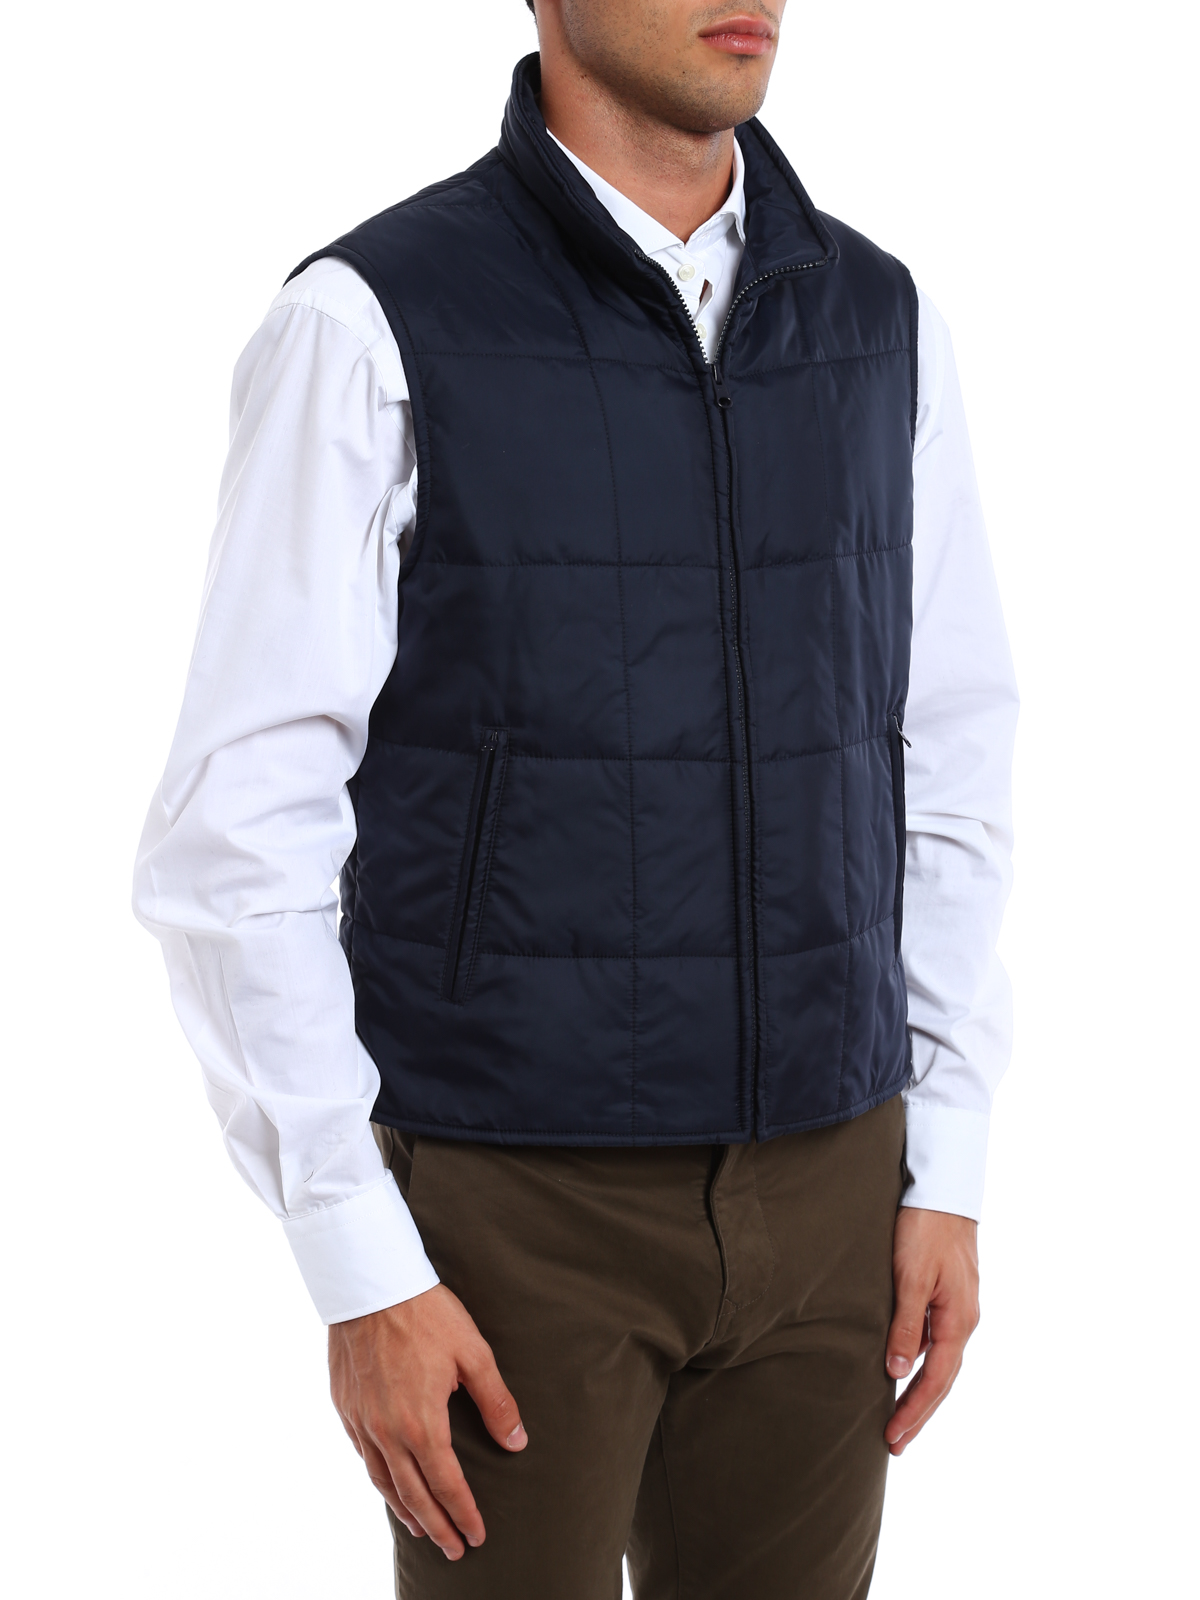 finest selection 82a85 73616 Fay - Giacca con gilet staccabile - giacche casual ...